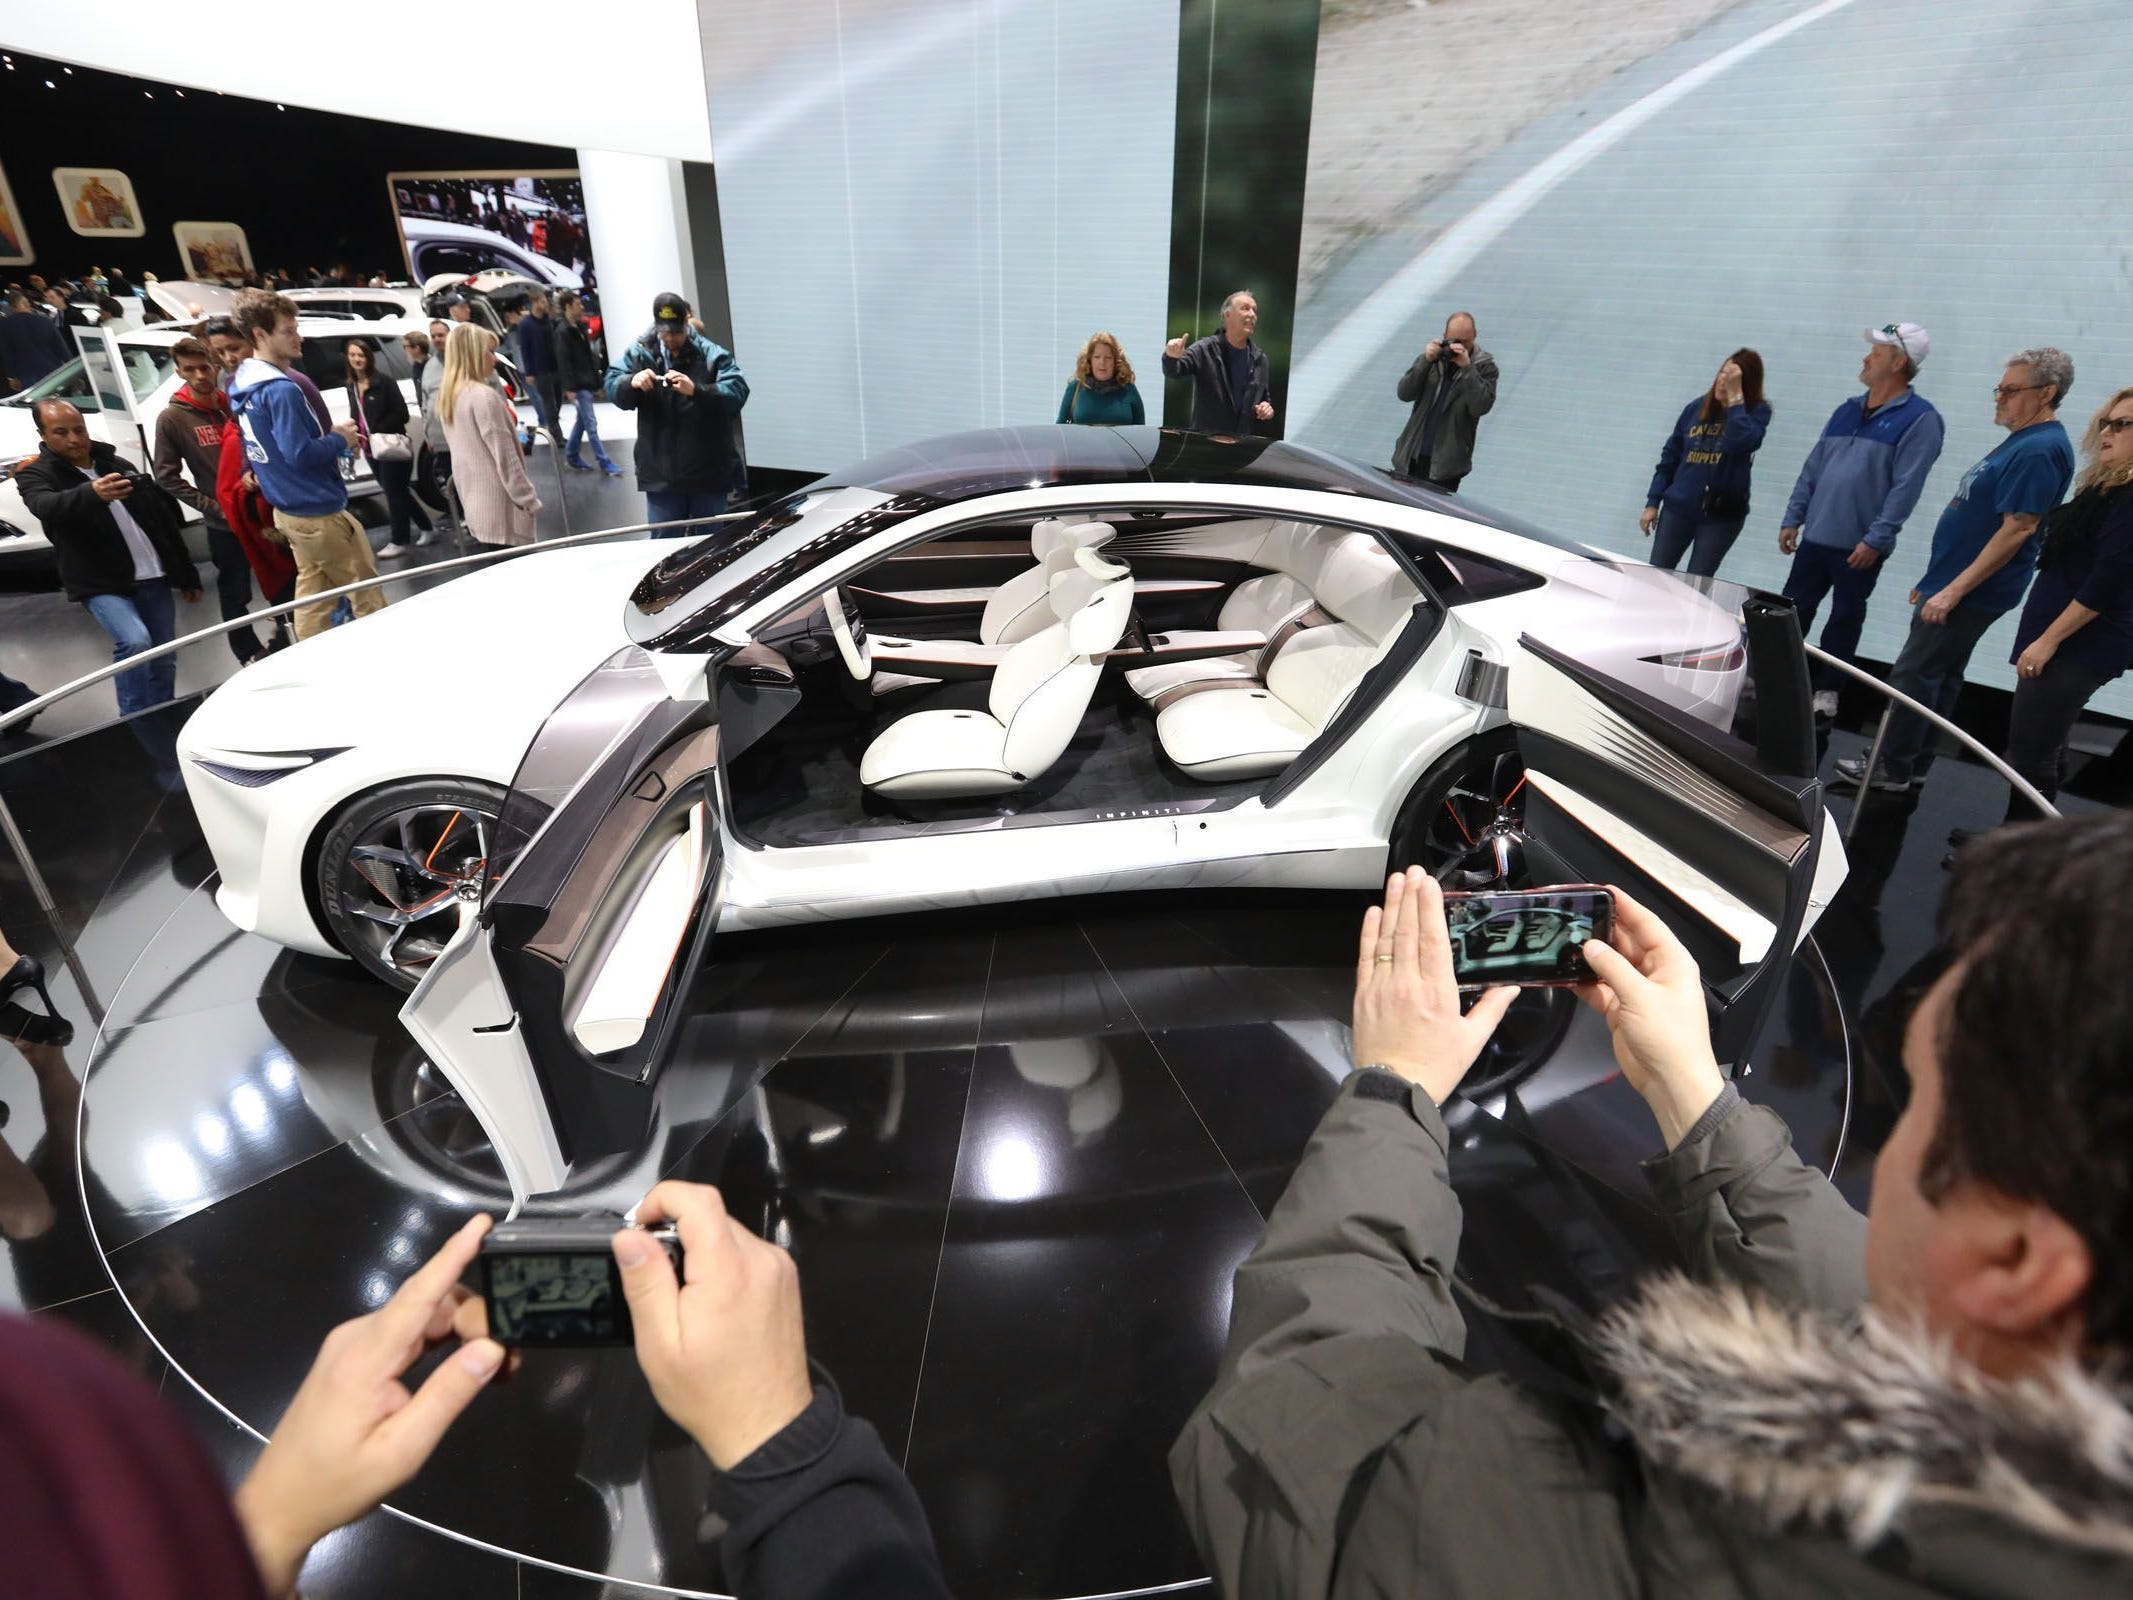 The Infiniti Q80 Inspiration concept draws a crowd during the first public day of the North American International Auto Show in Detroit on Saturday, Jan. 20, 2018.